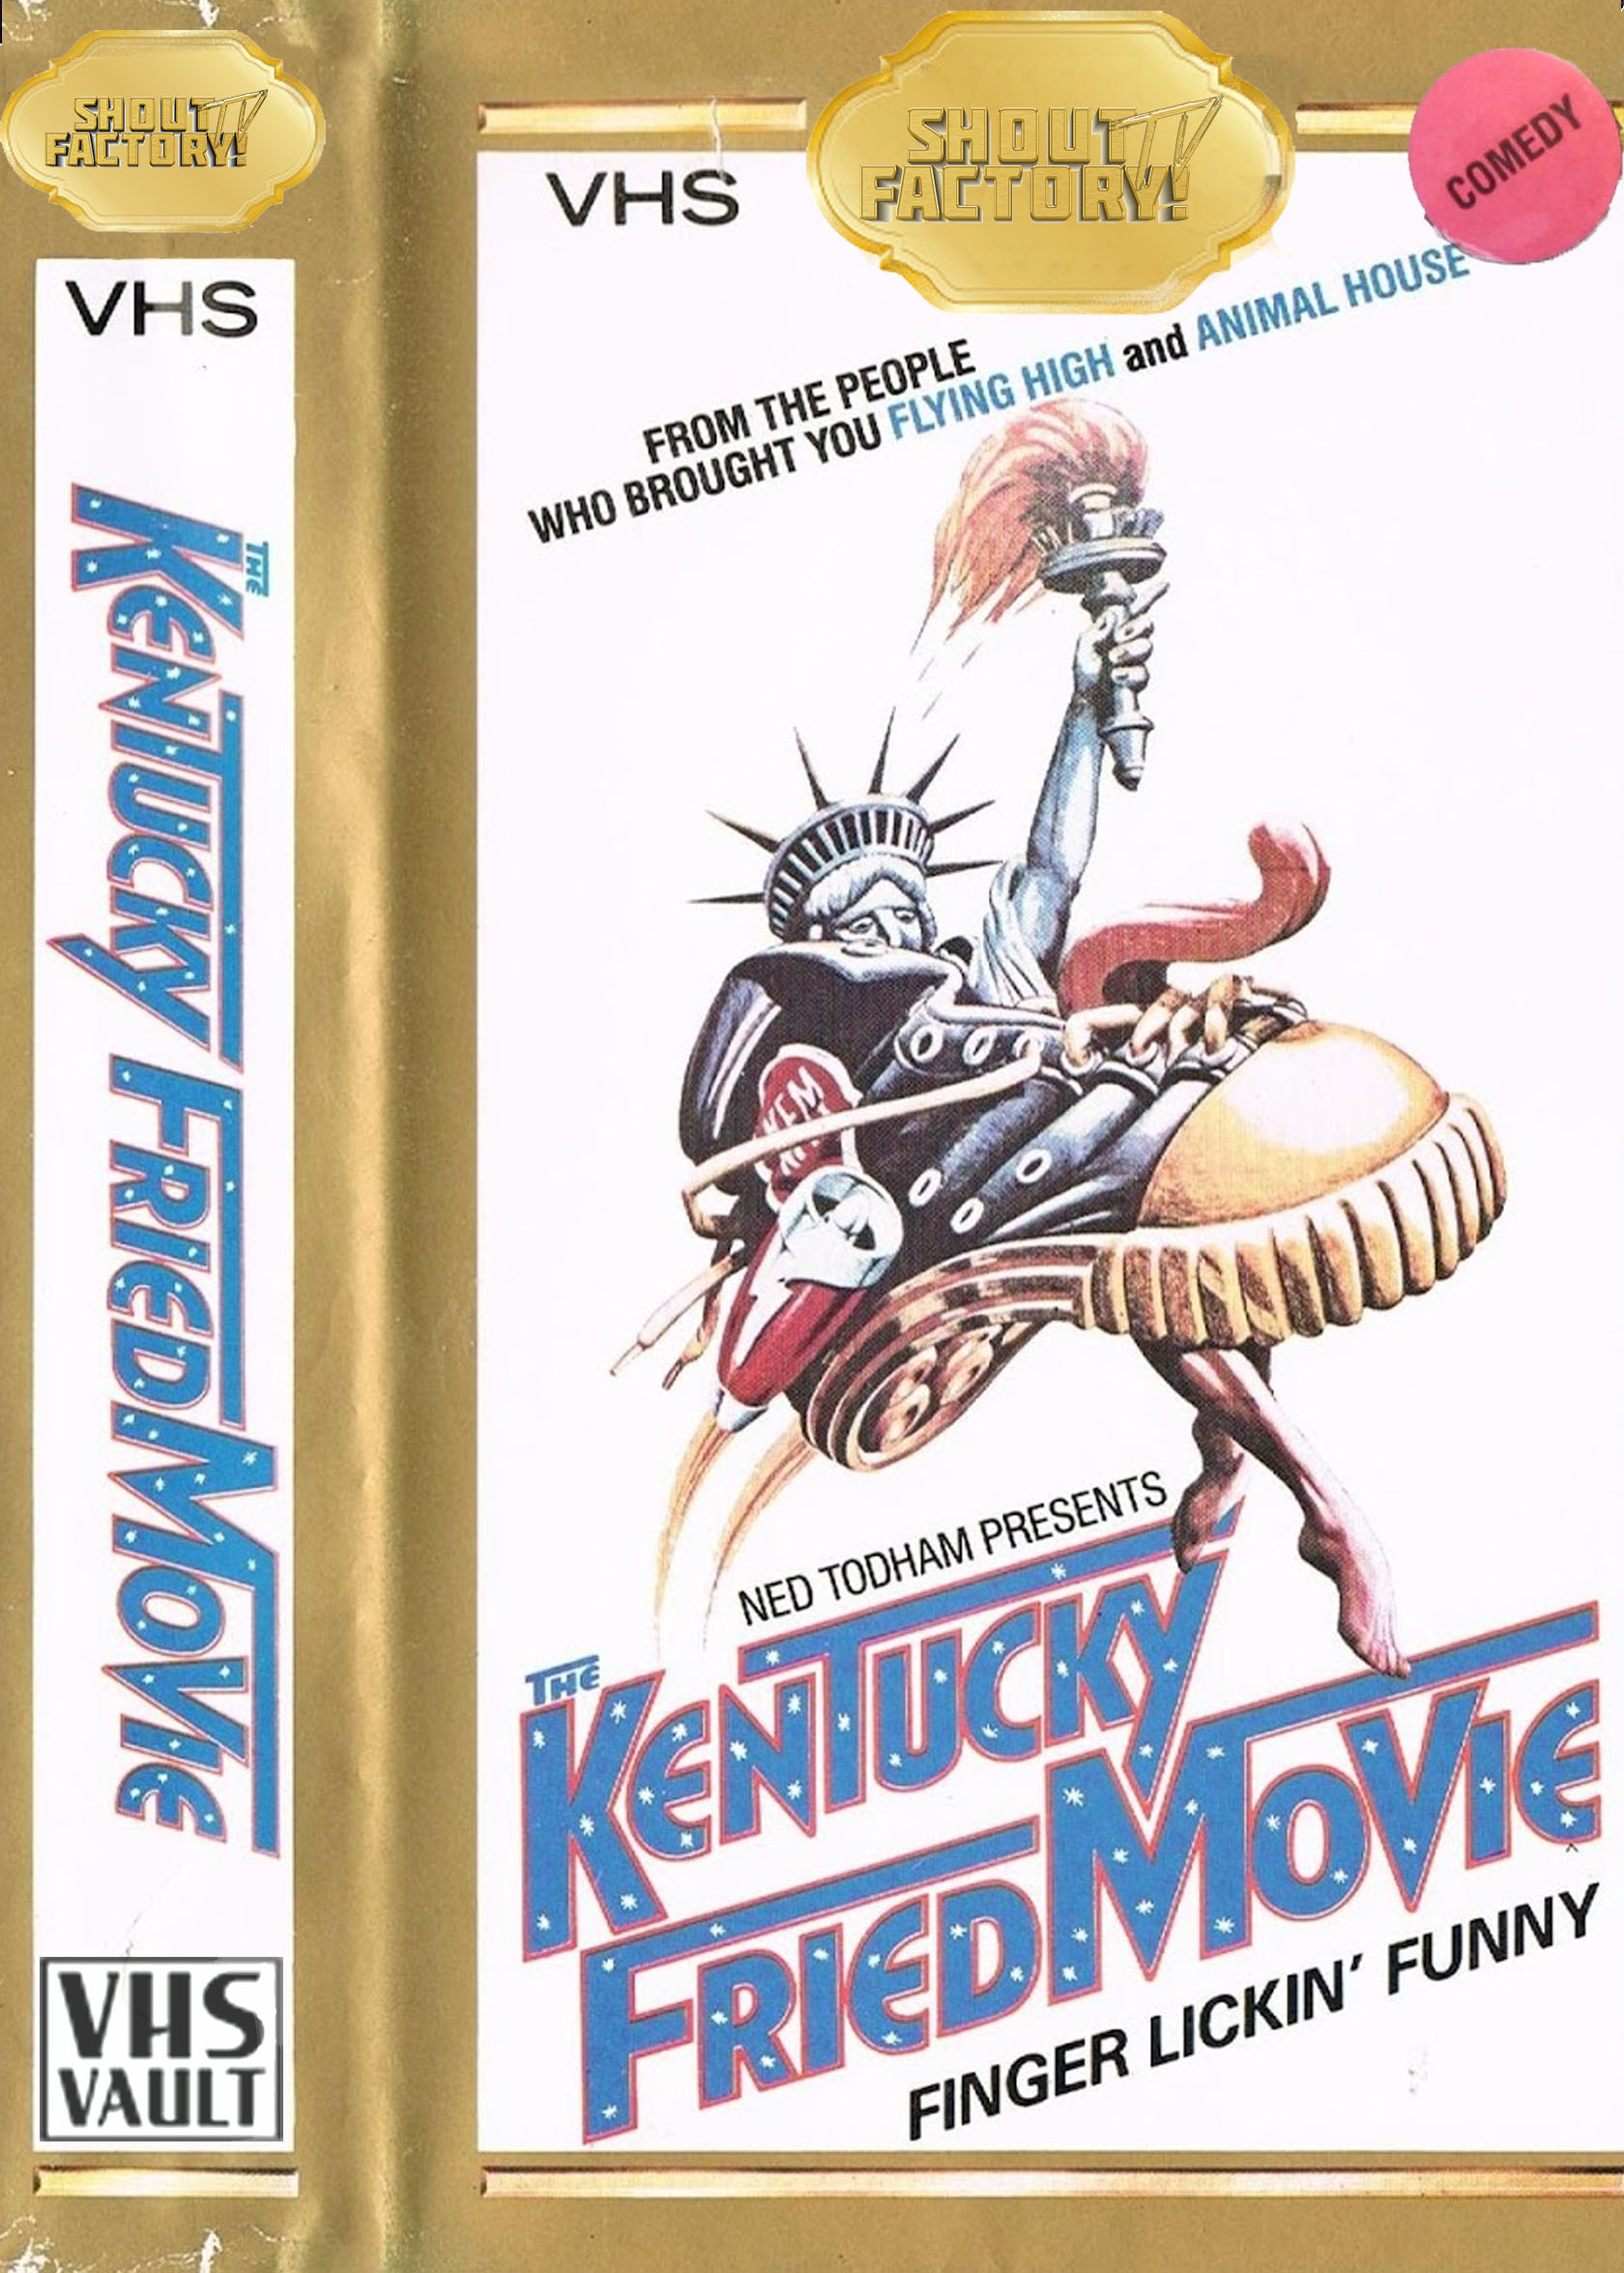 Kentucky Fried Movie [VHS Vault]